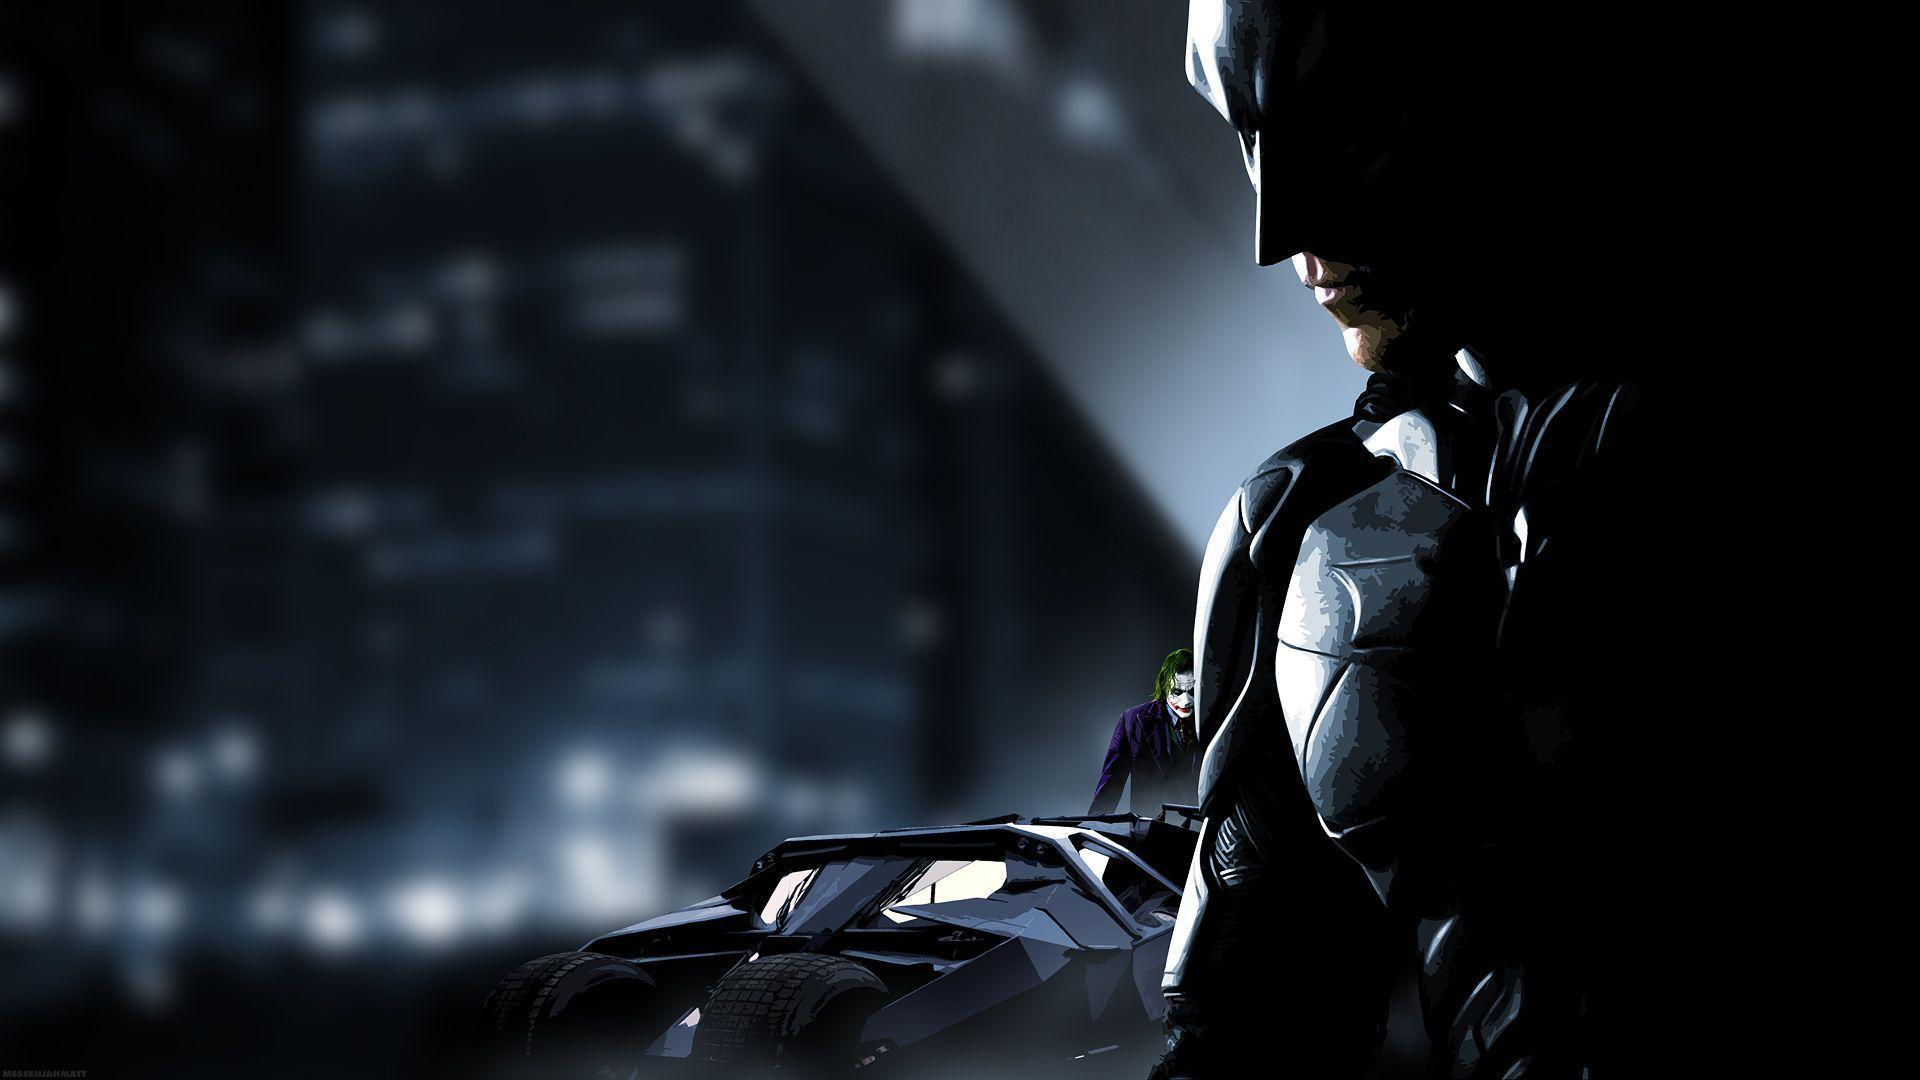 batman wallpaper 1080p | Wallput.com